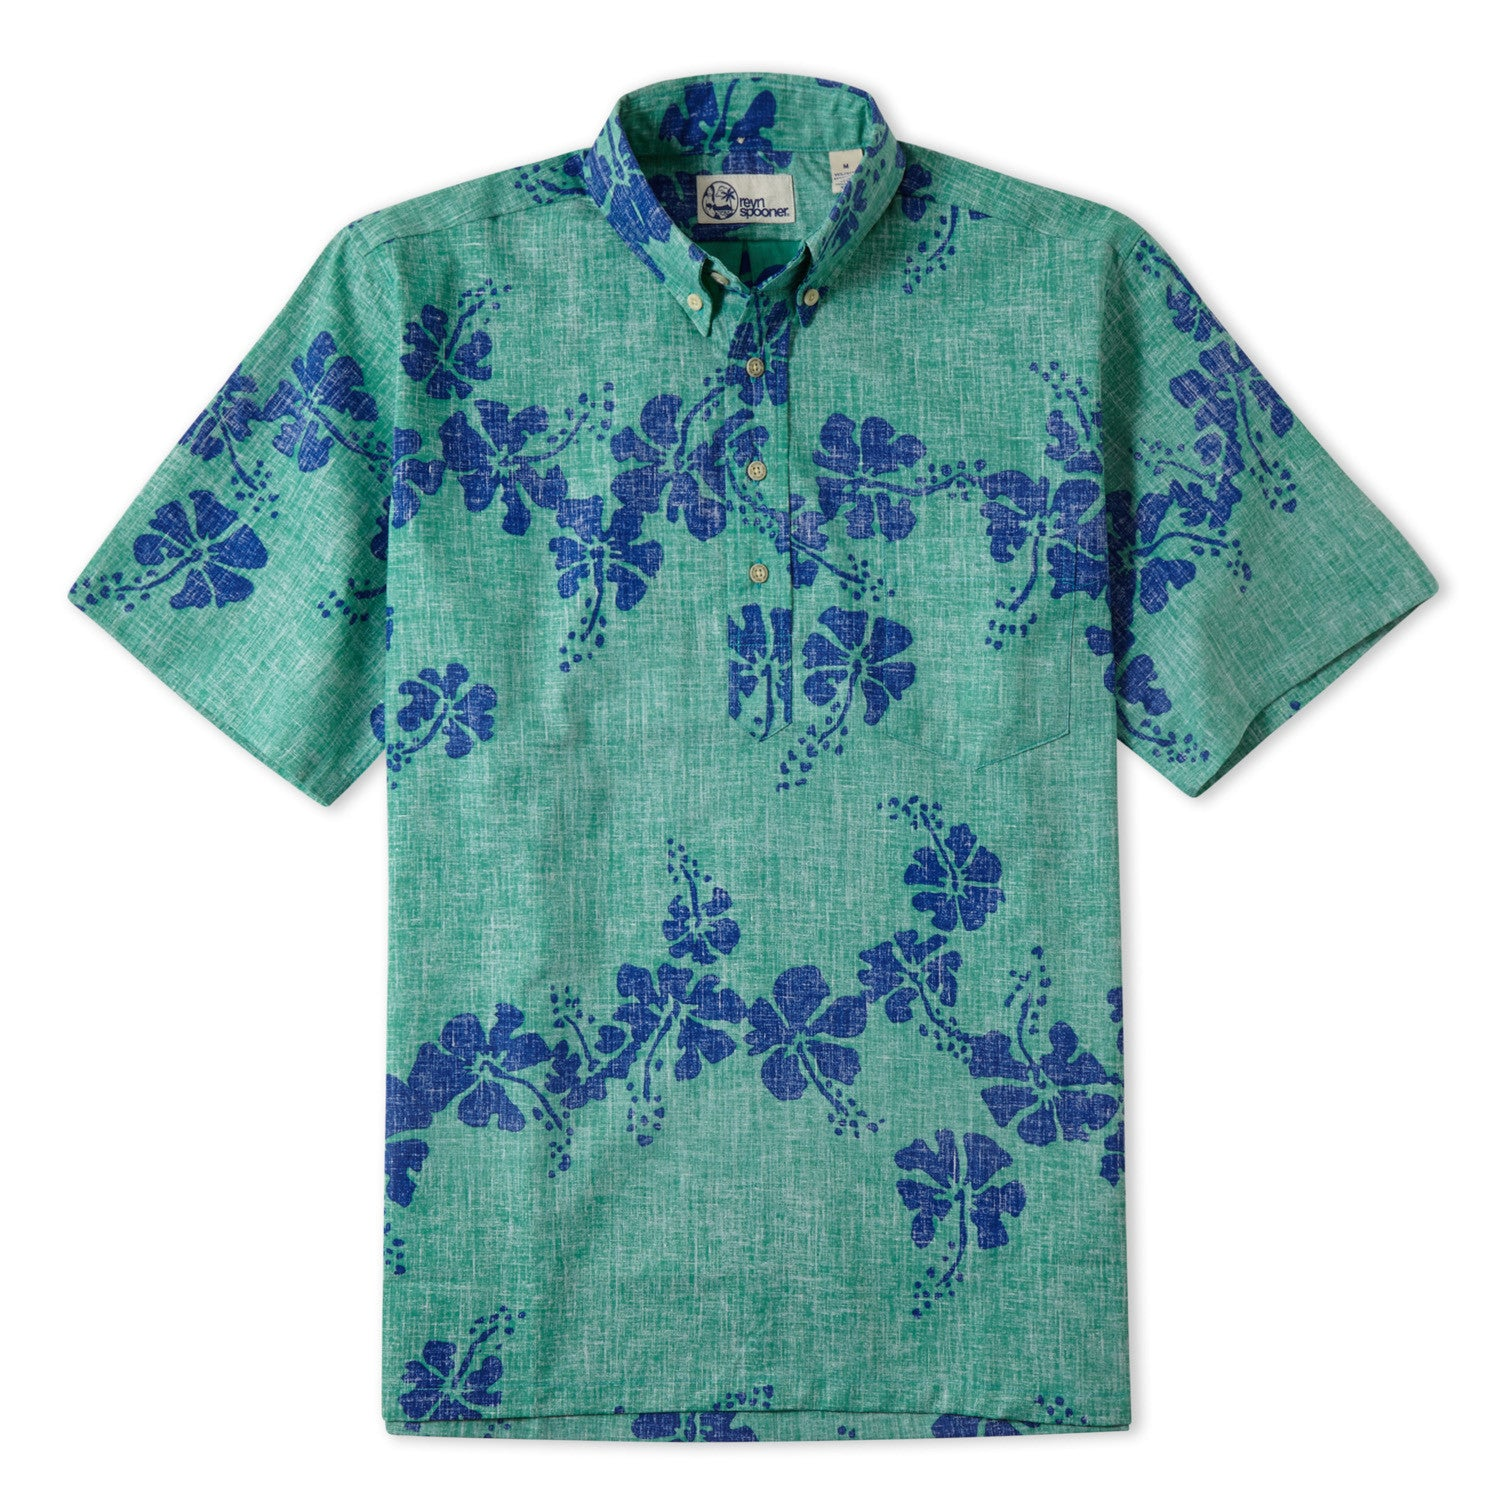 50Th State Flower Classic Fit Short Sleeve Pullover Shirt, Cotton/Polyester, For Men, 2XL, Mint Green, From Reyn Spooner